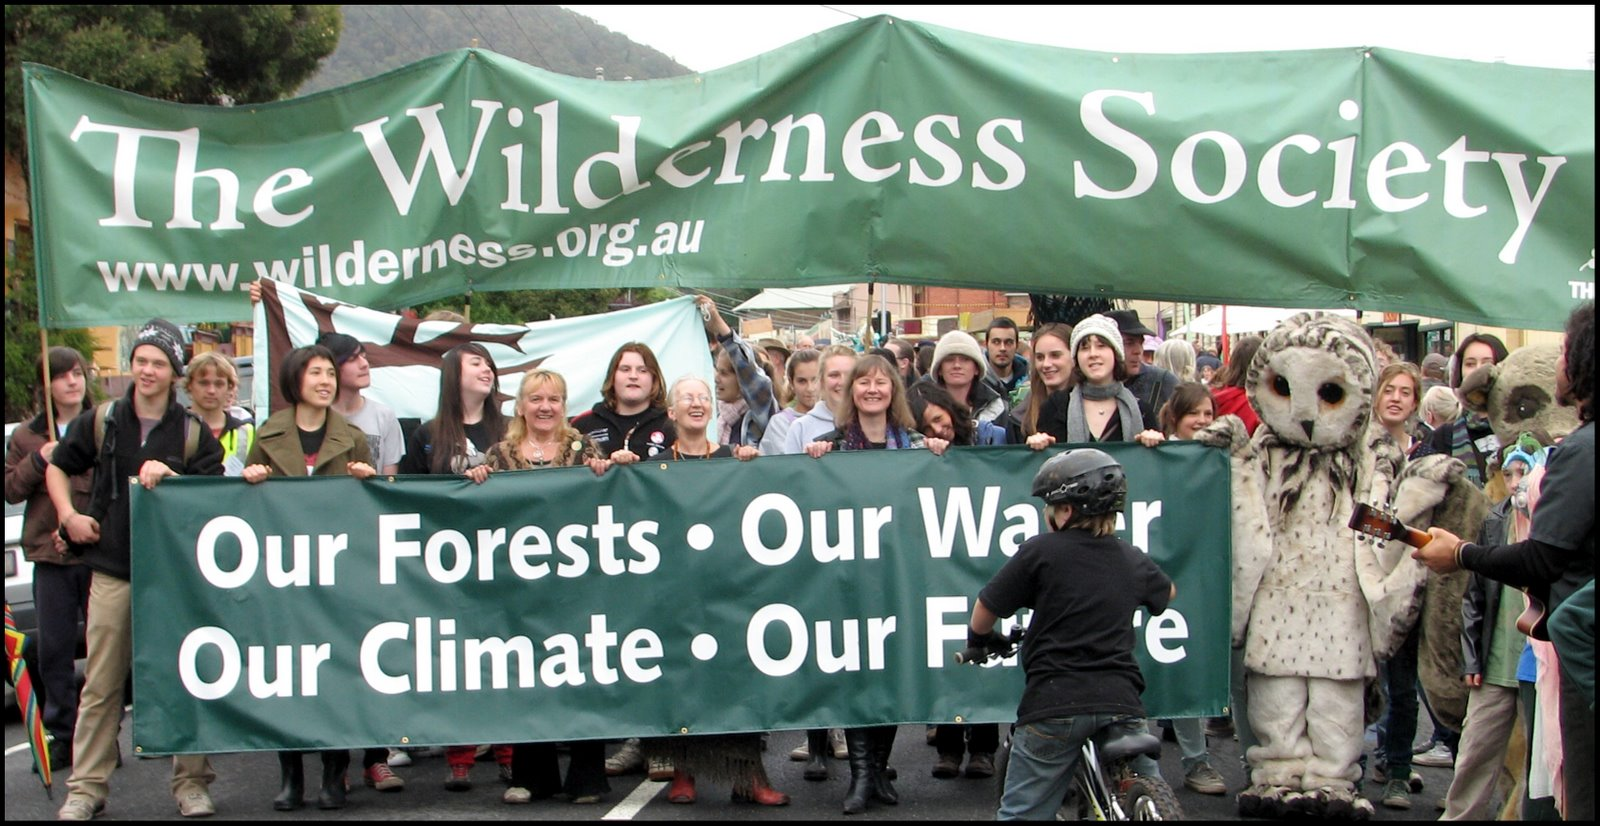 [Our+Forests+Our+Water+Our+Climate+Our+Future+Rally+in+Warburton.jpg]